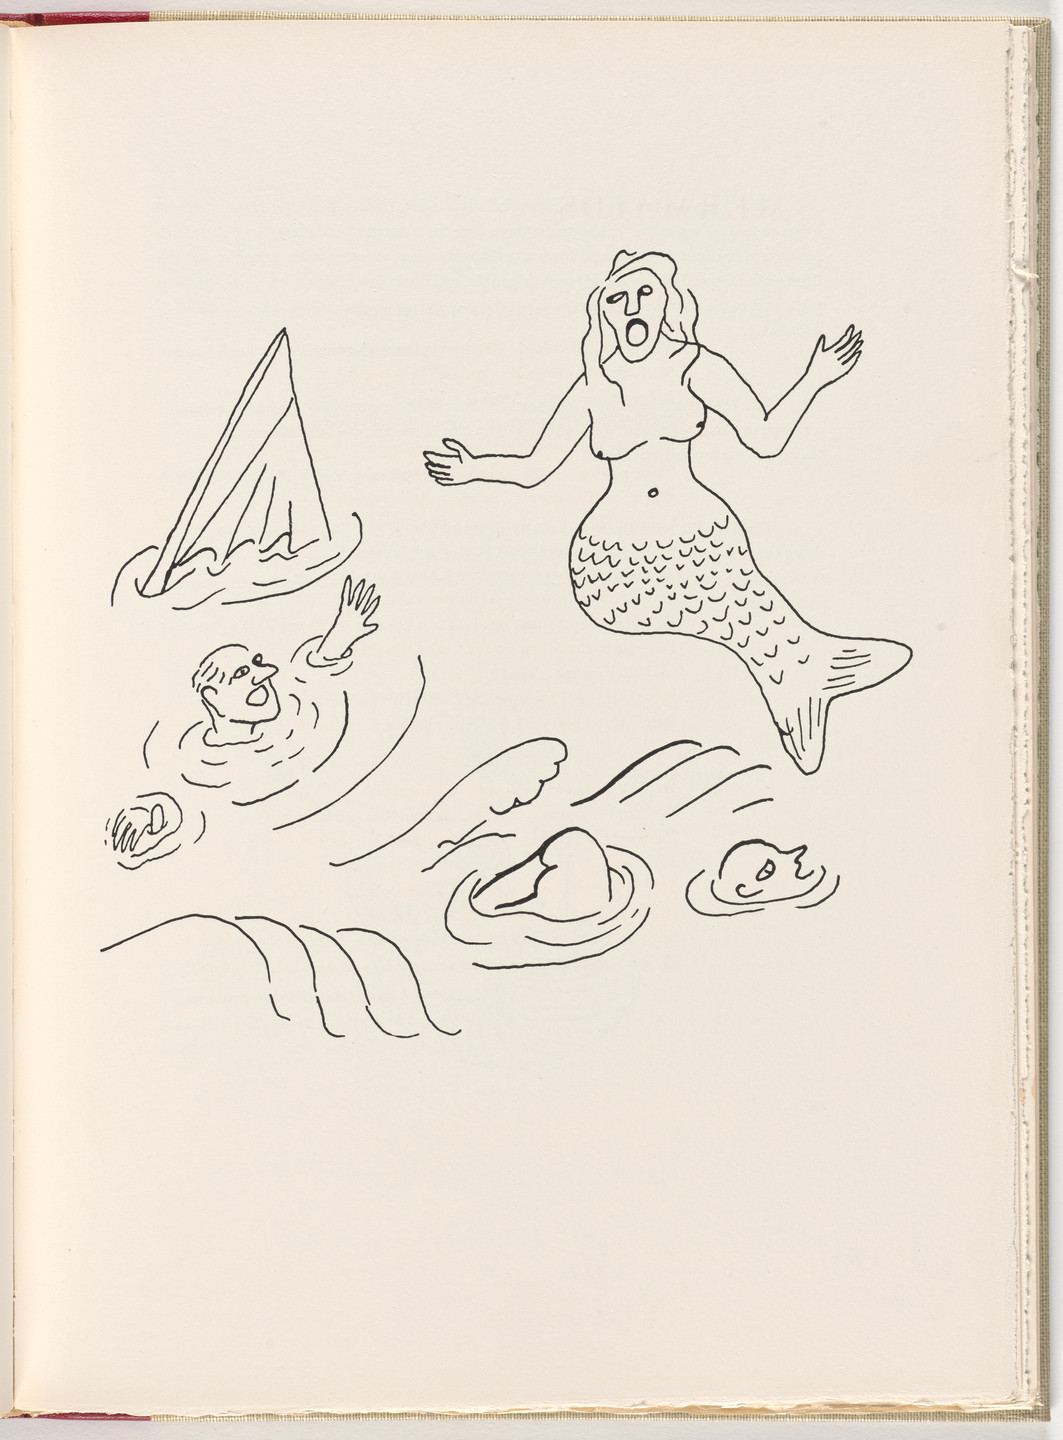 Alexander Calder. Plate (page 25) from A Bestiary. 1955